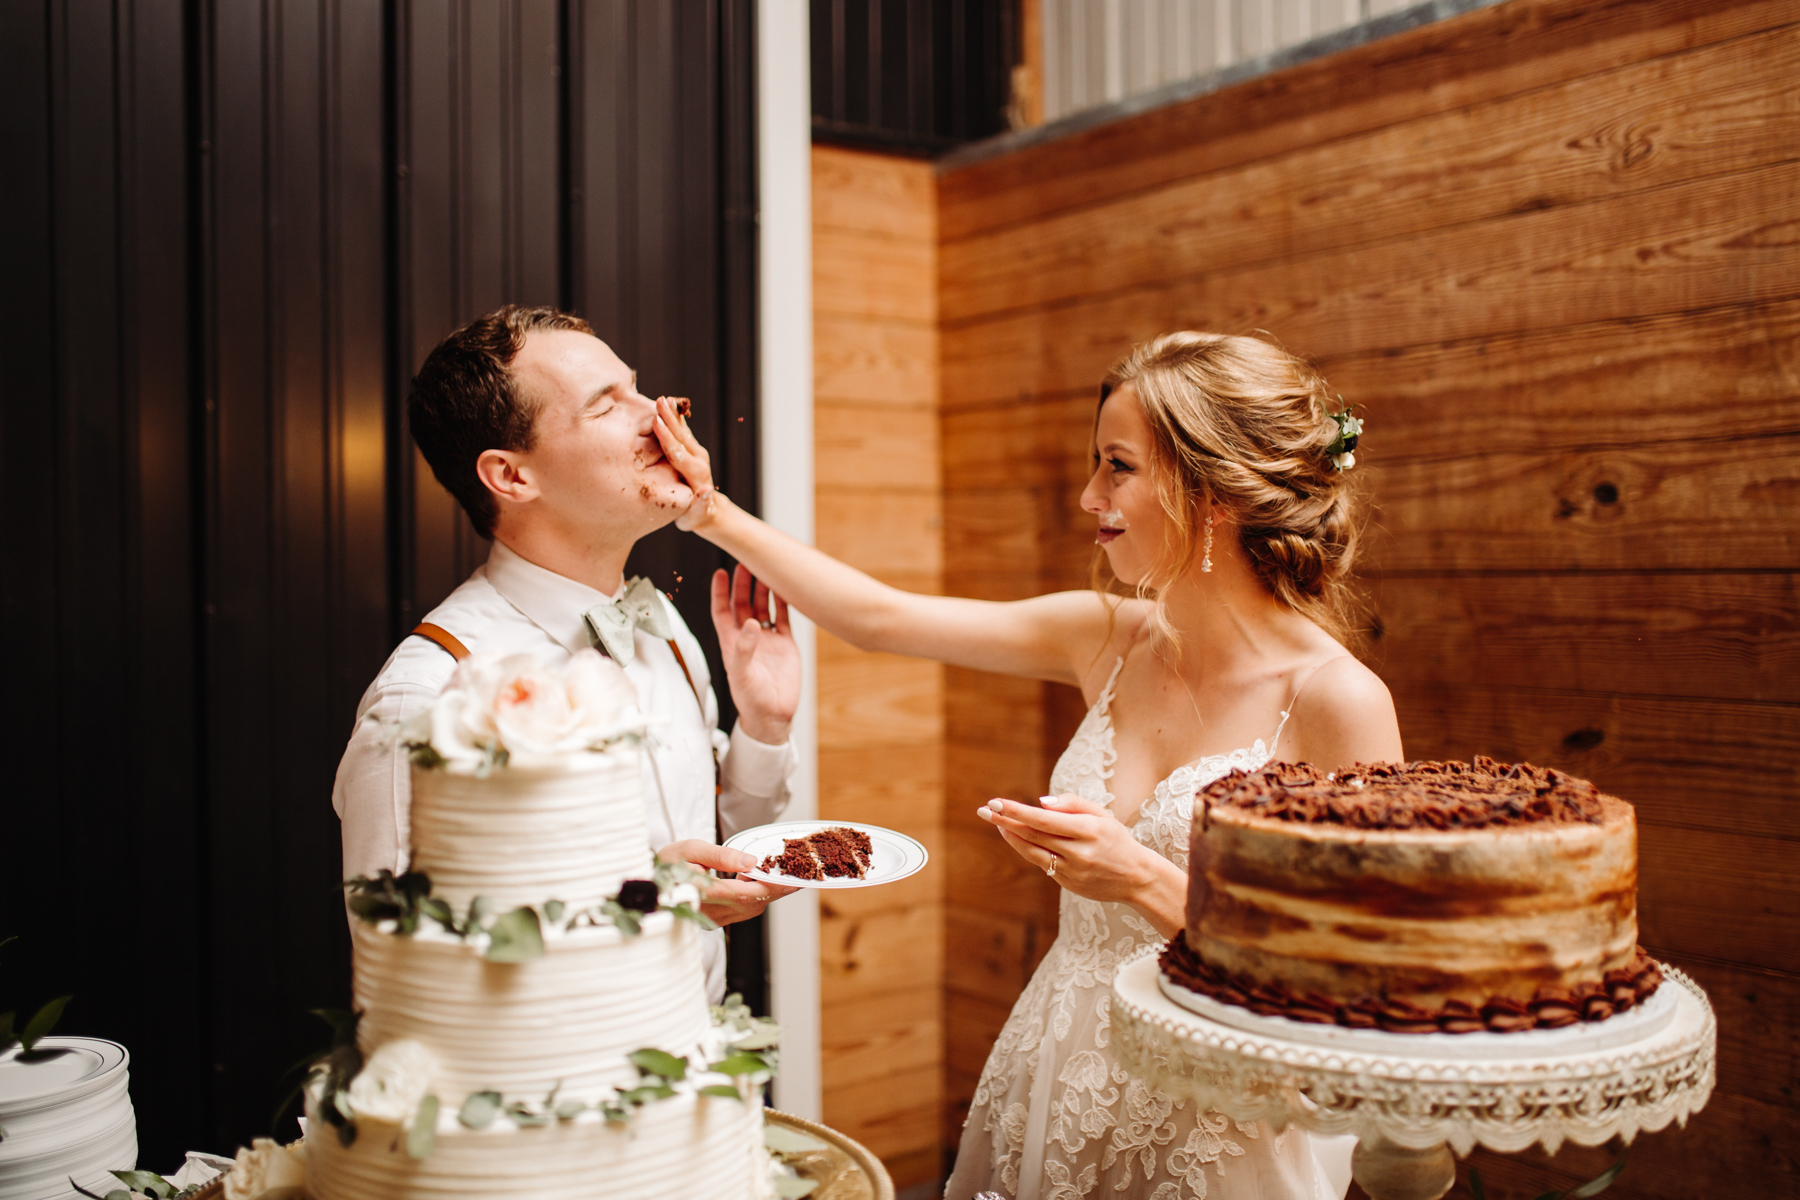 Bride smashes cake on her groom's face at their stables at strawberry creek wedding in knoxville, tennessee